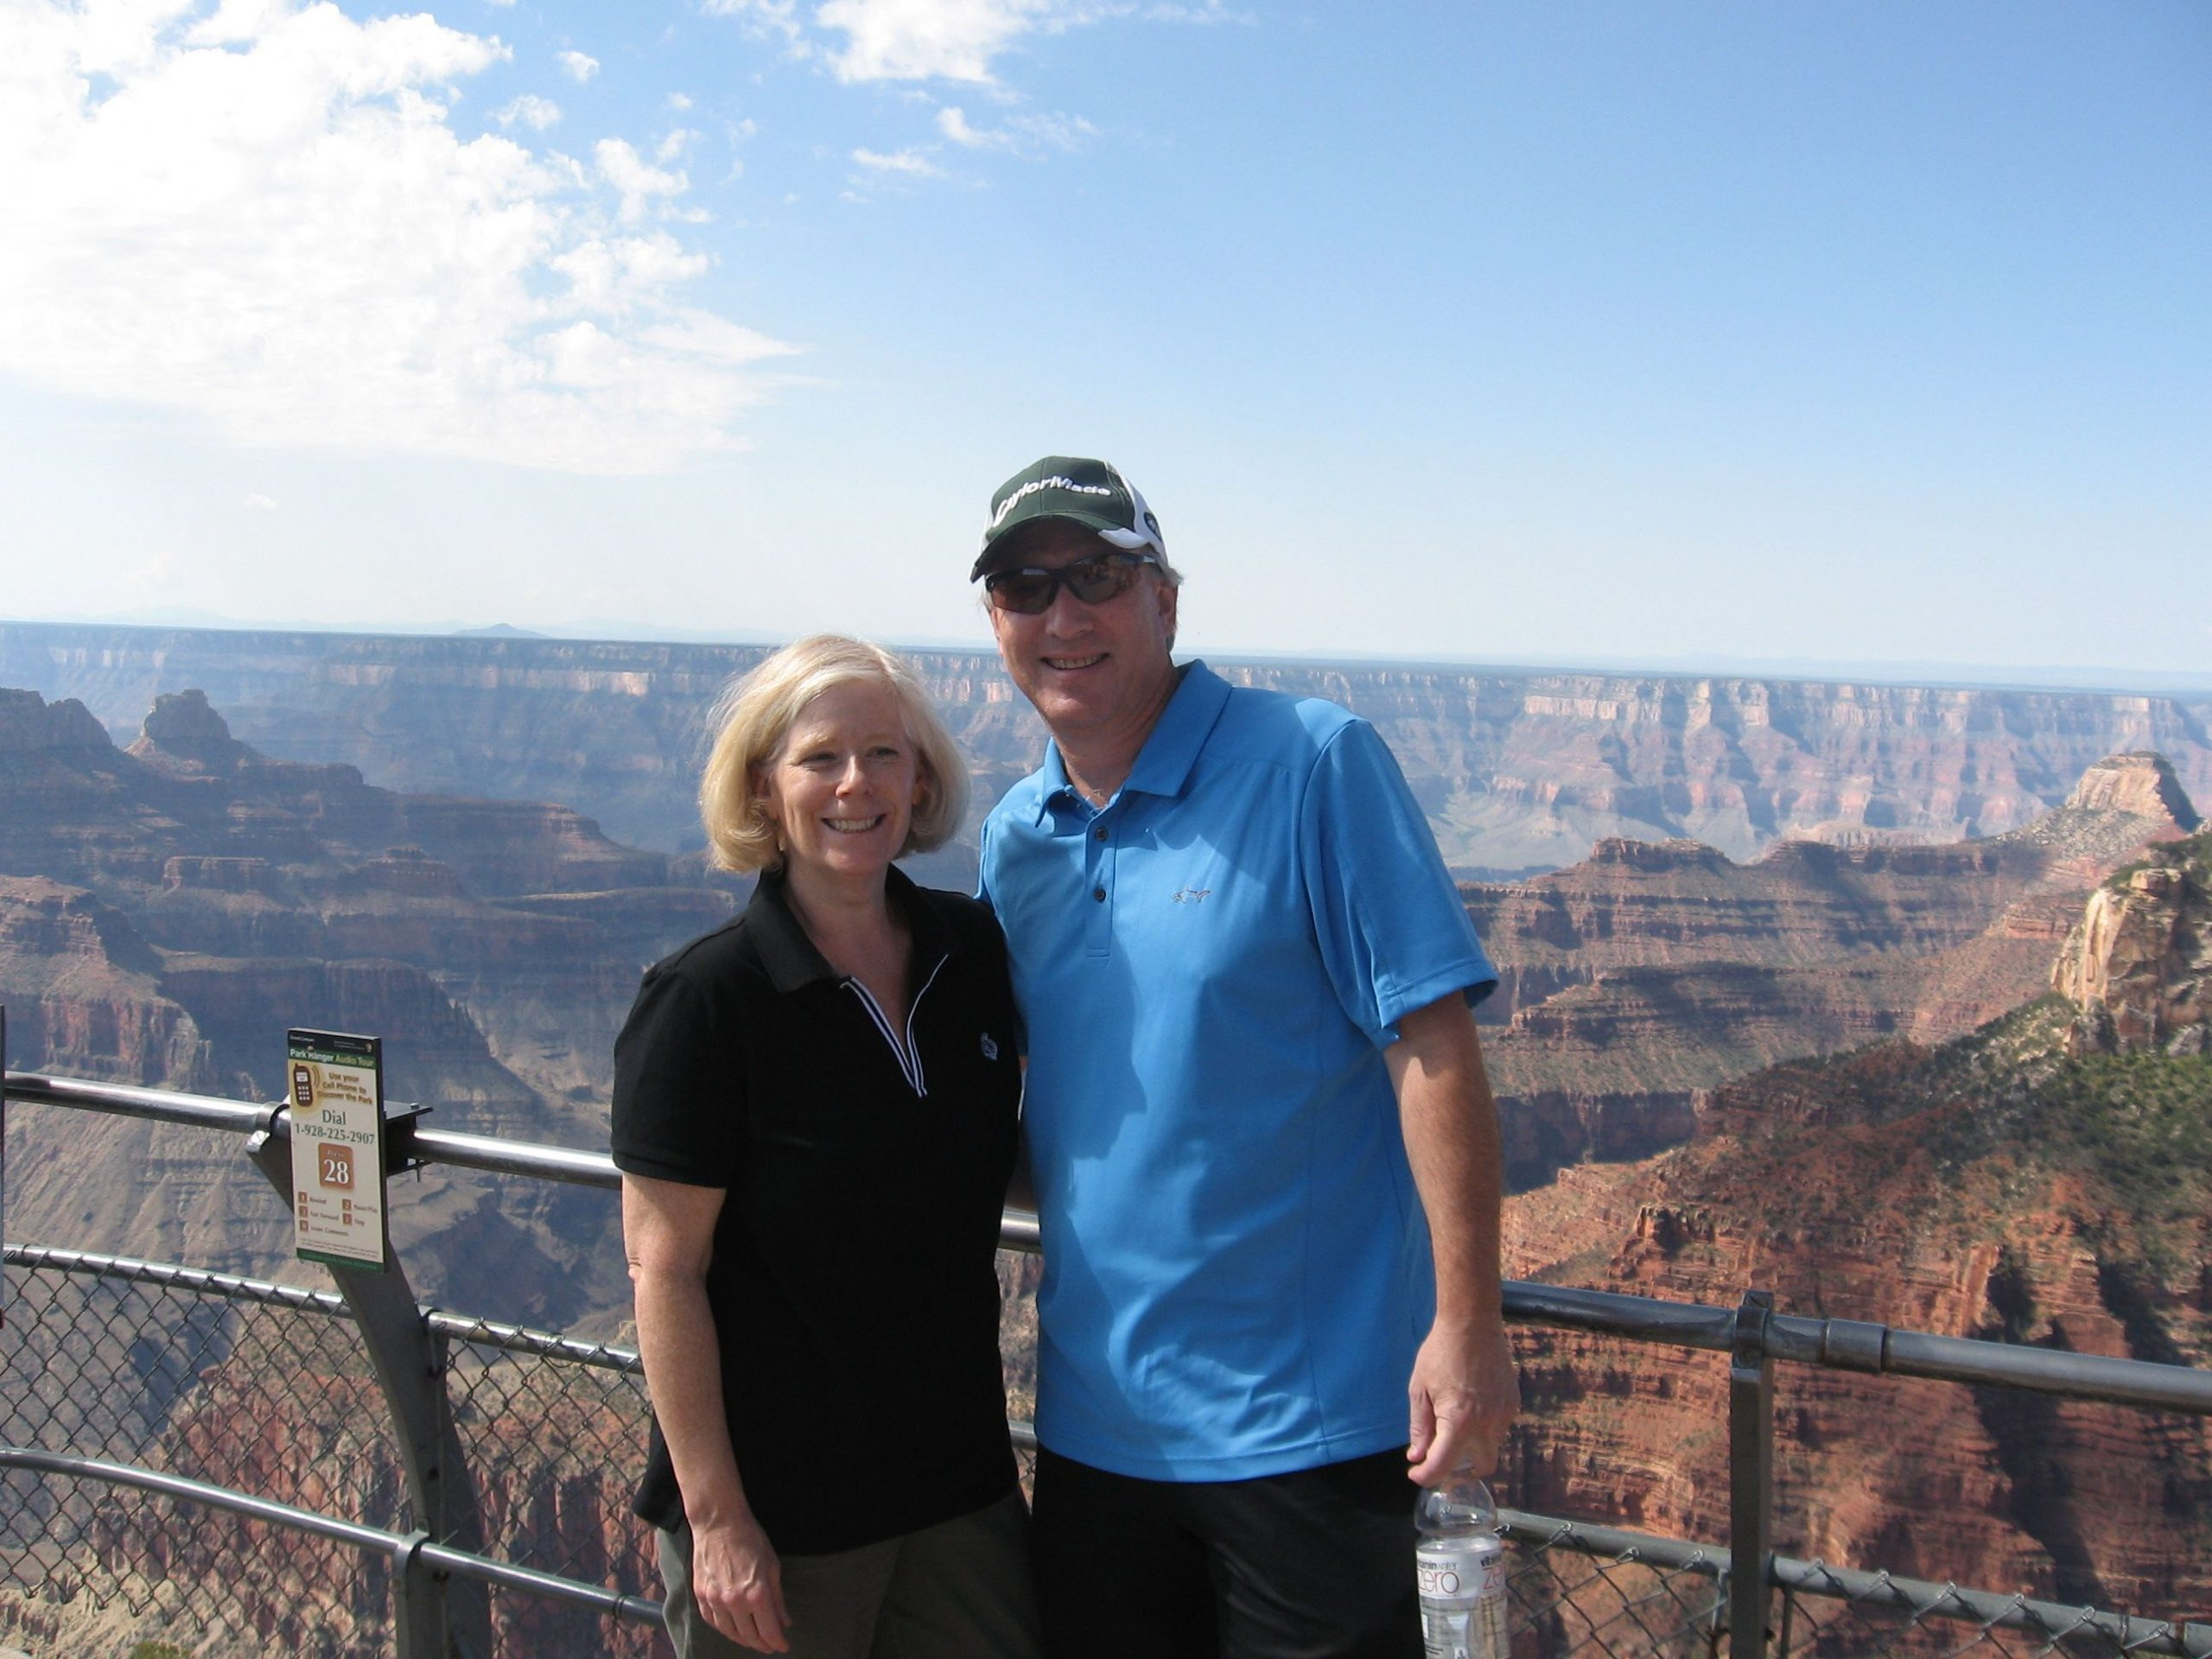 Jeanne and Ed at The Grand Canyon